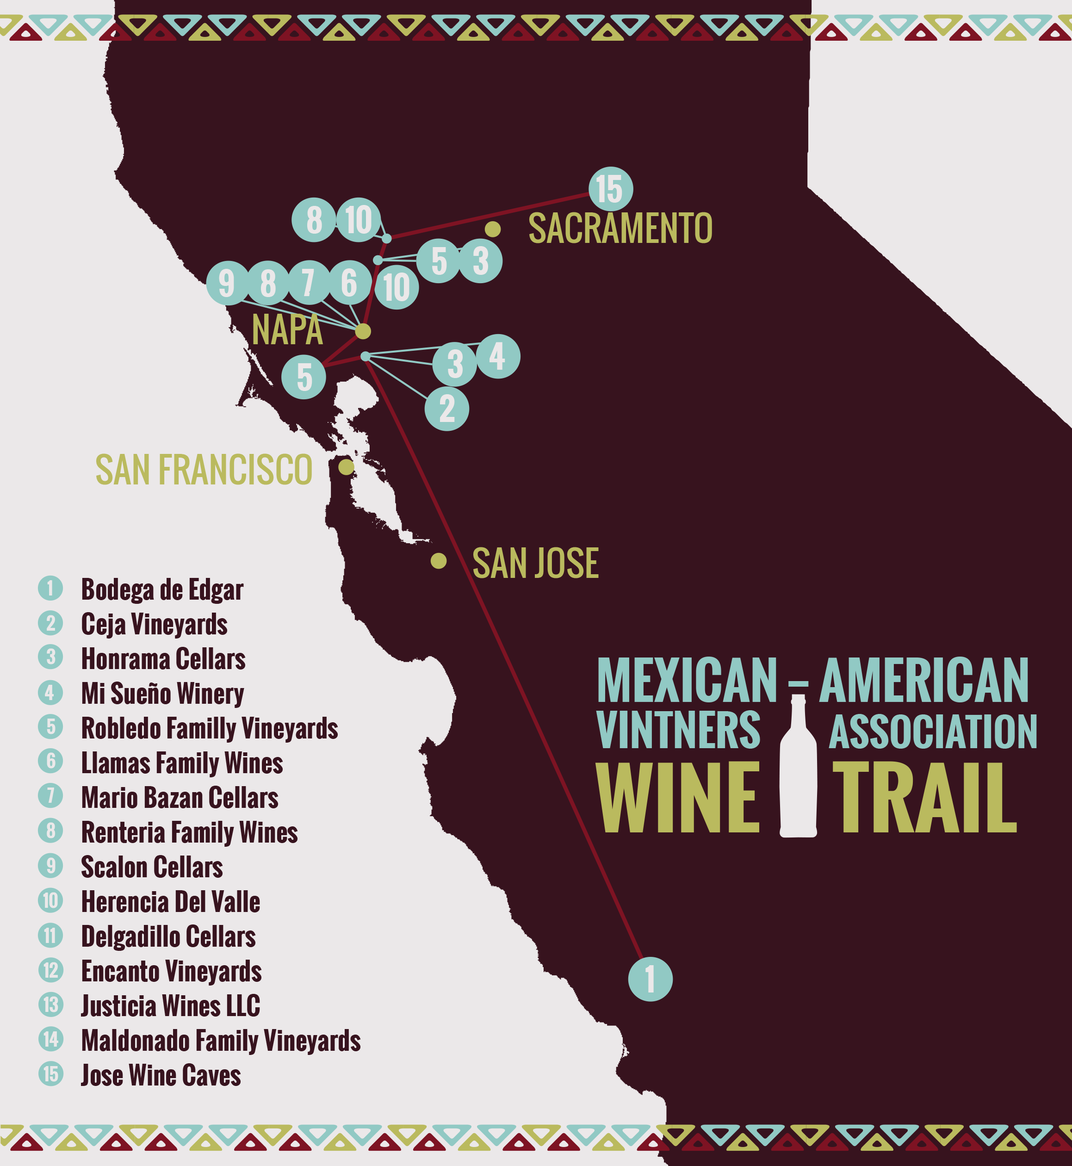 ¡Salud! to the Mexican-American Wine Revolution